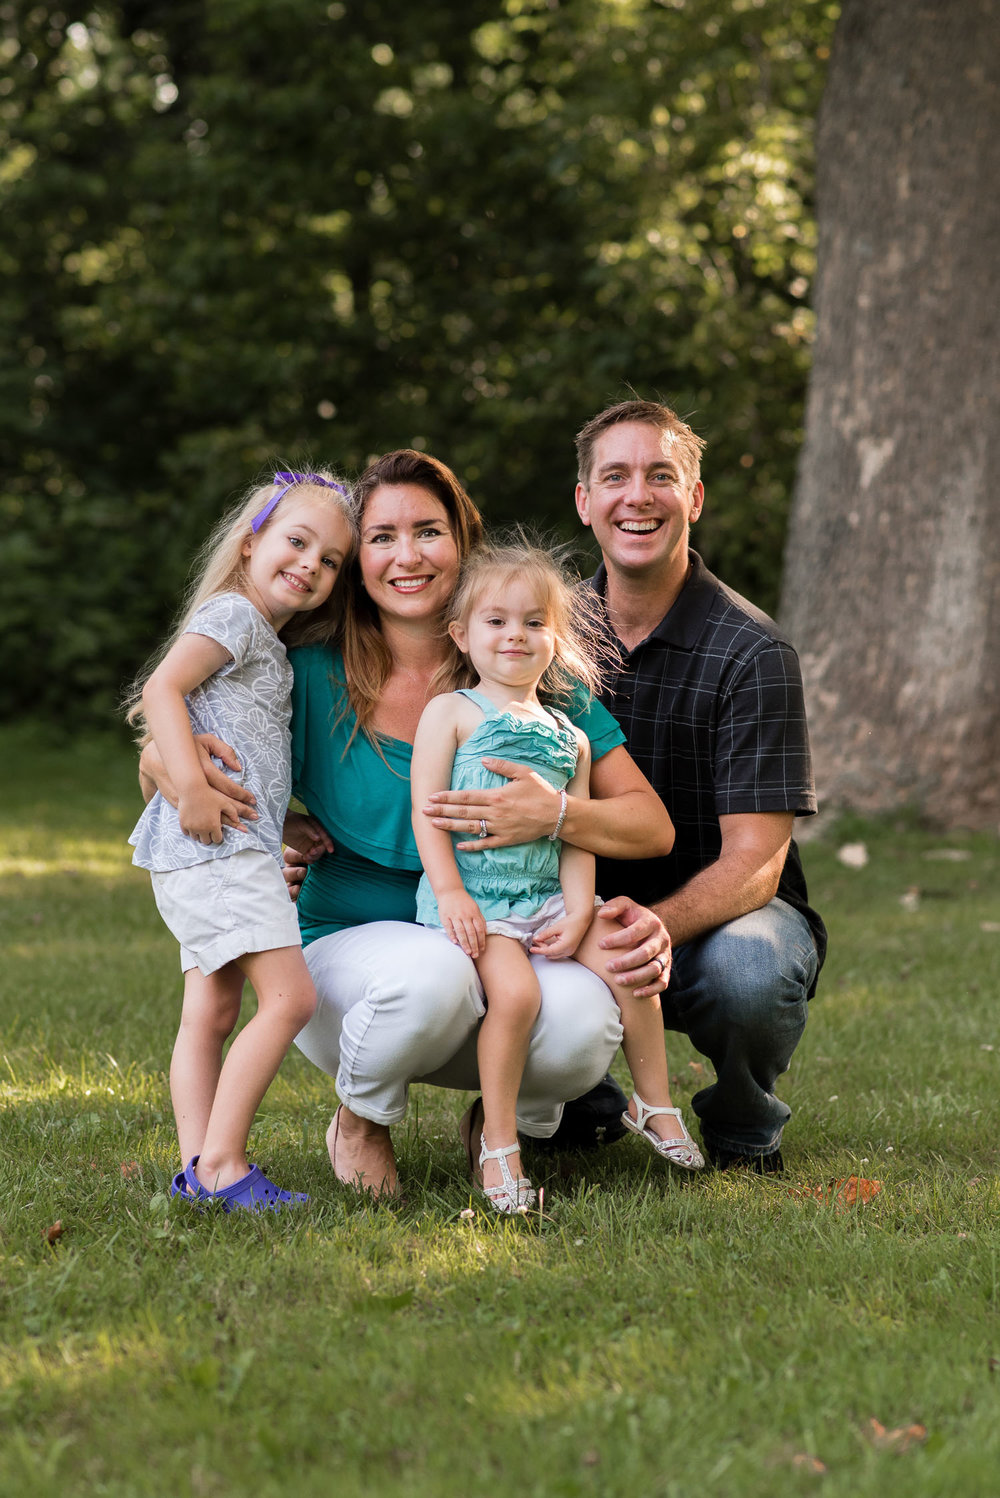 fischer park montgomery county photographer family picture